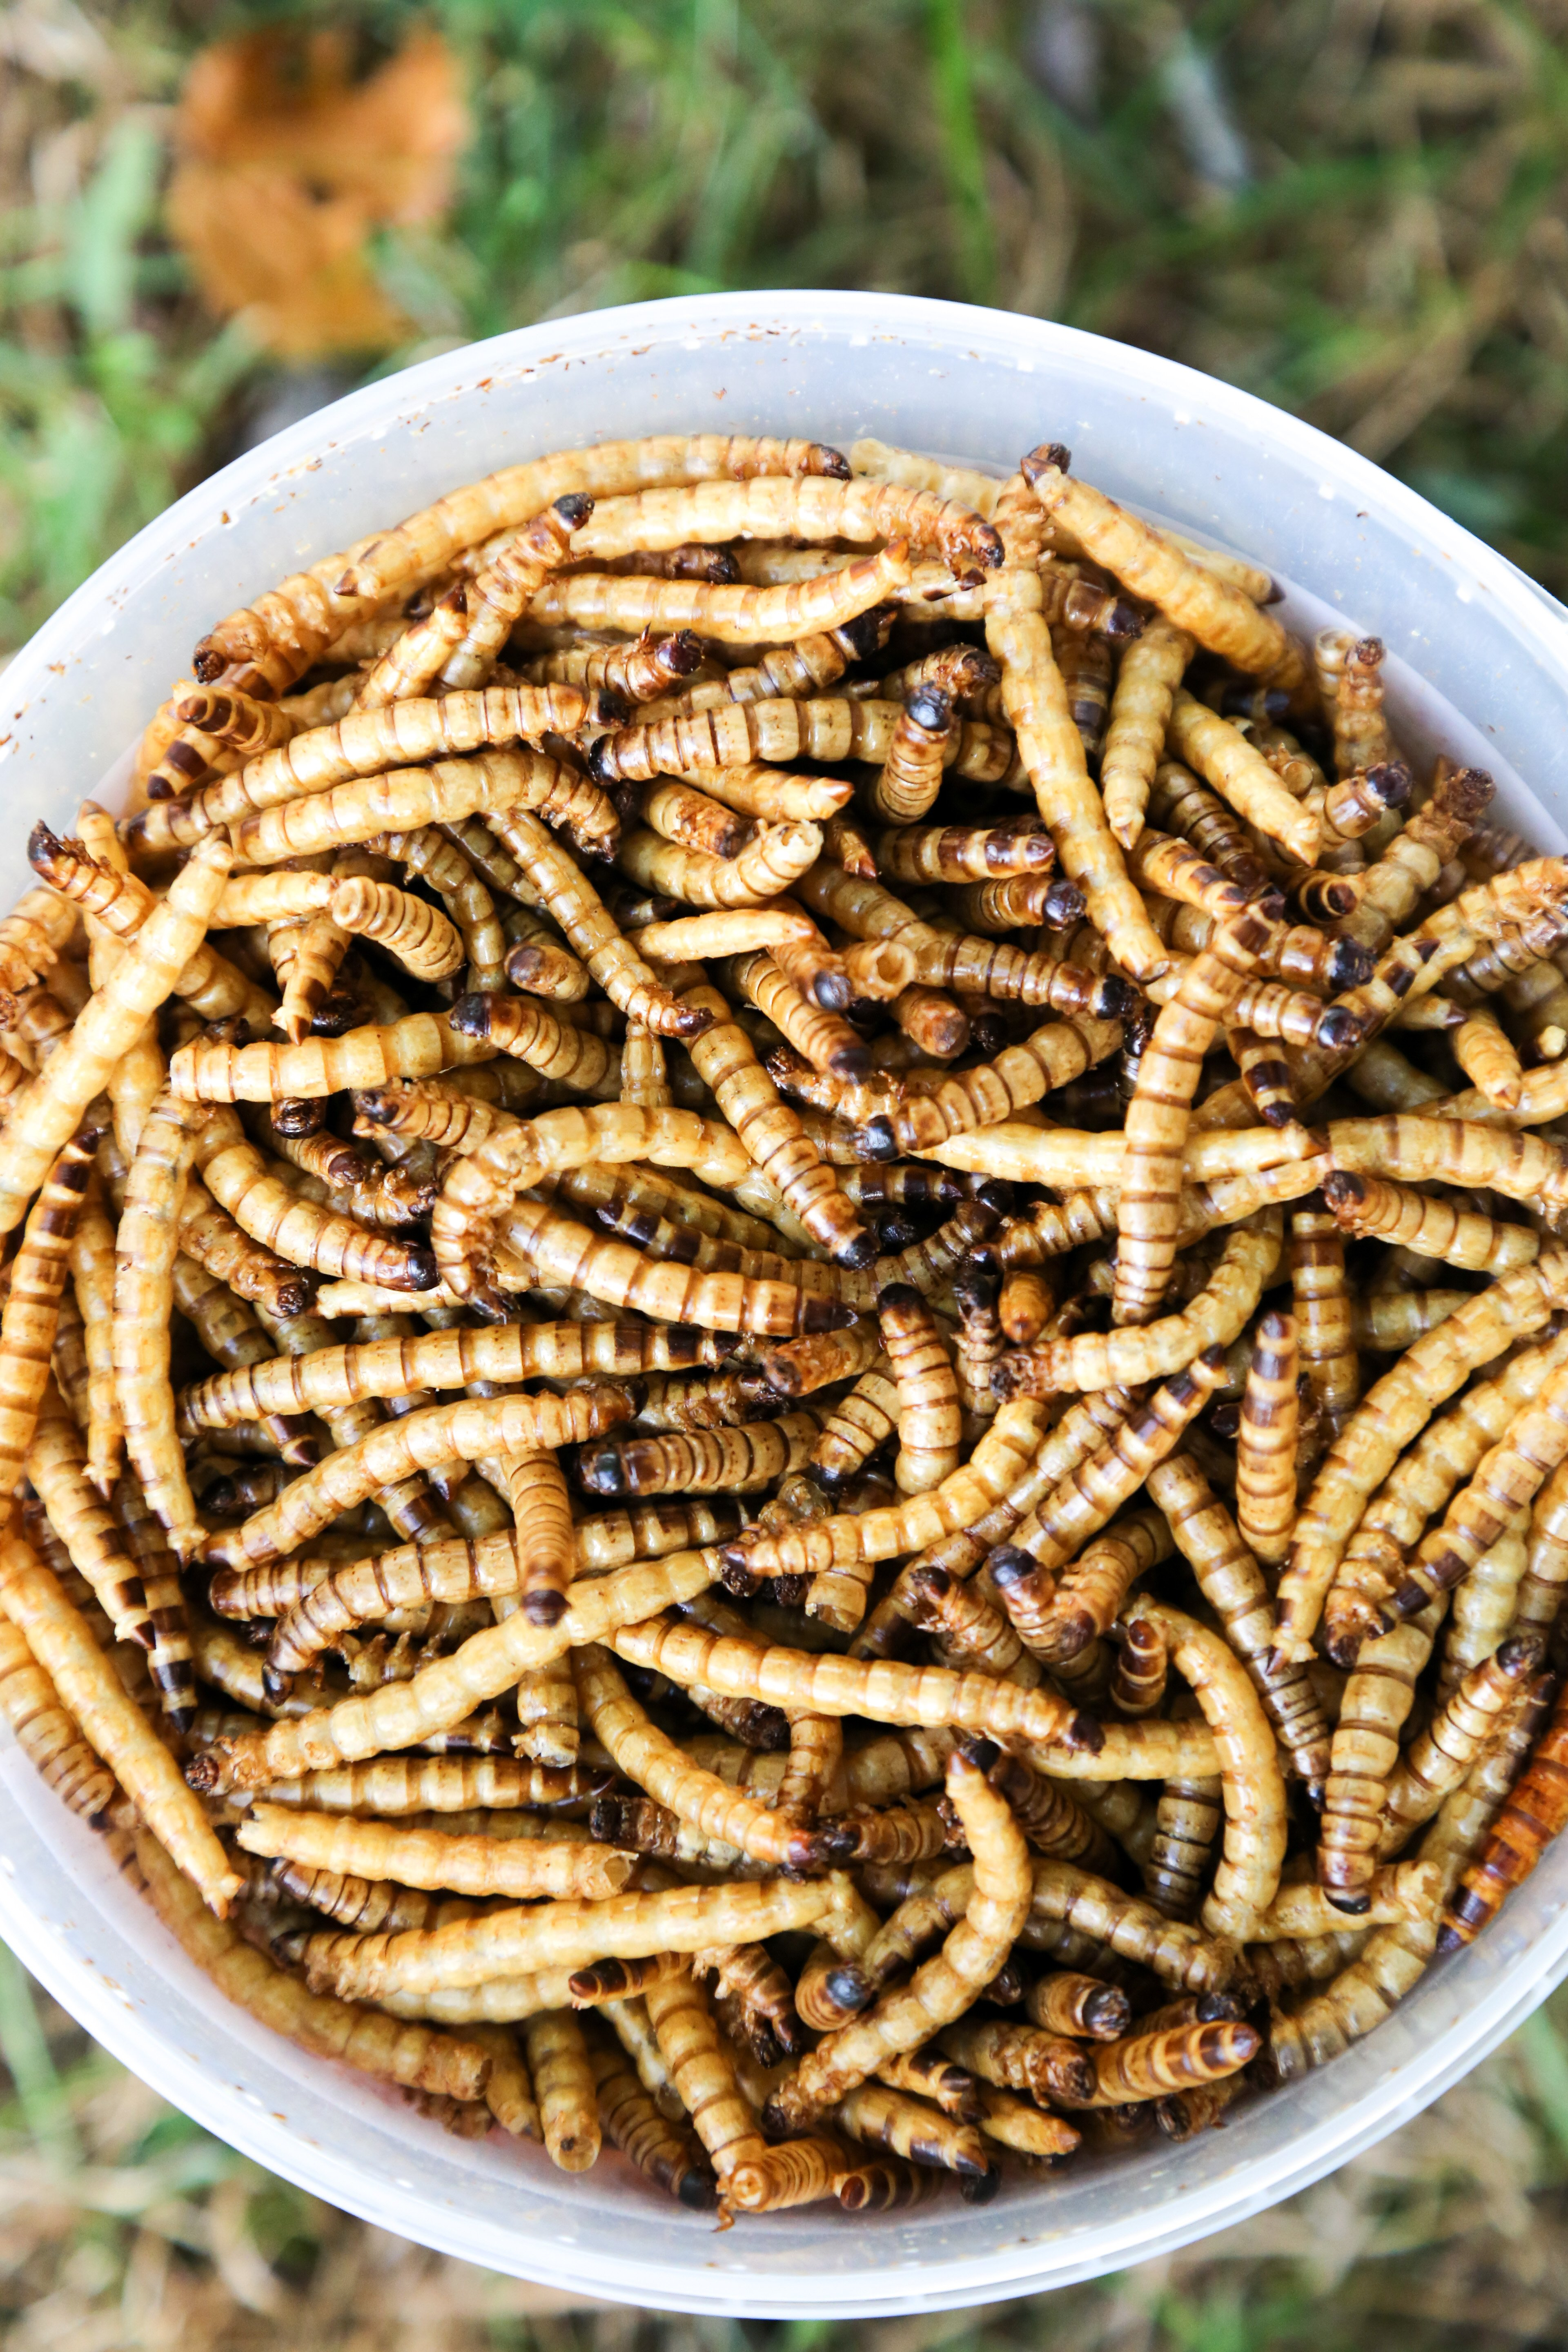 original_caughey-melissacaughey-chubby-mealworms-super-worms